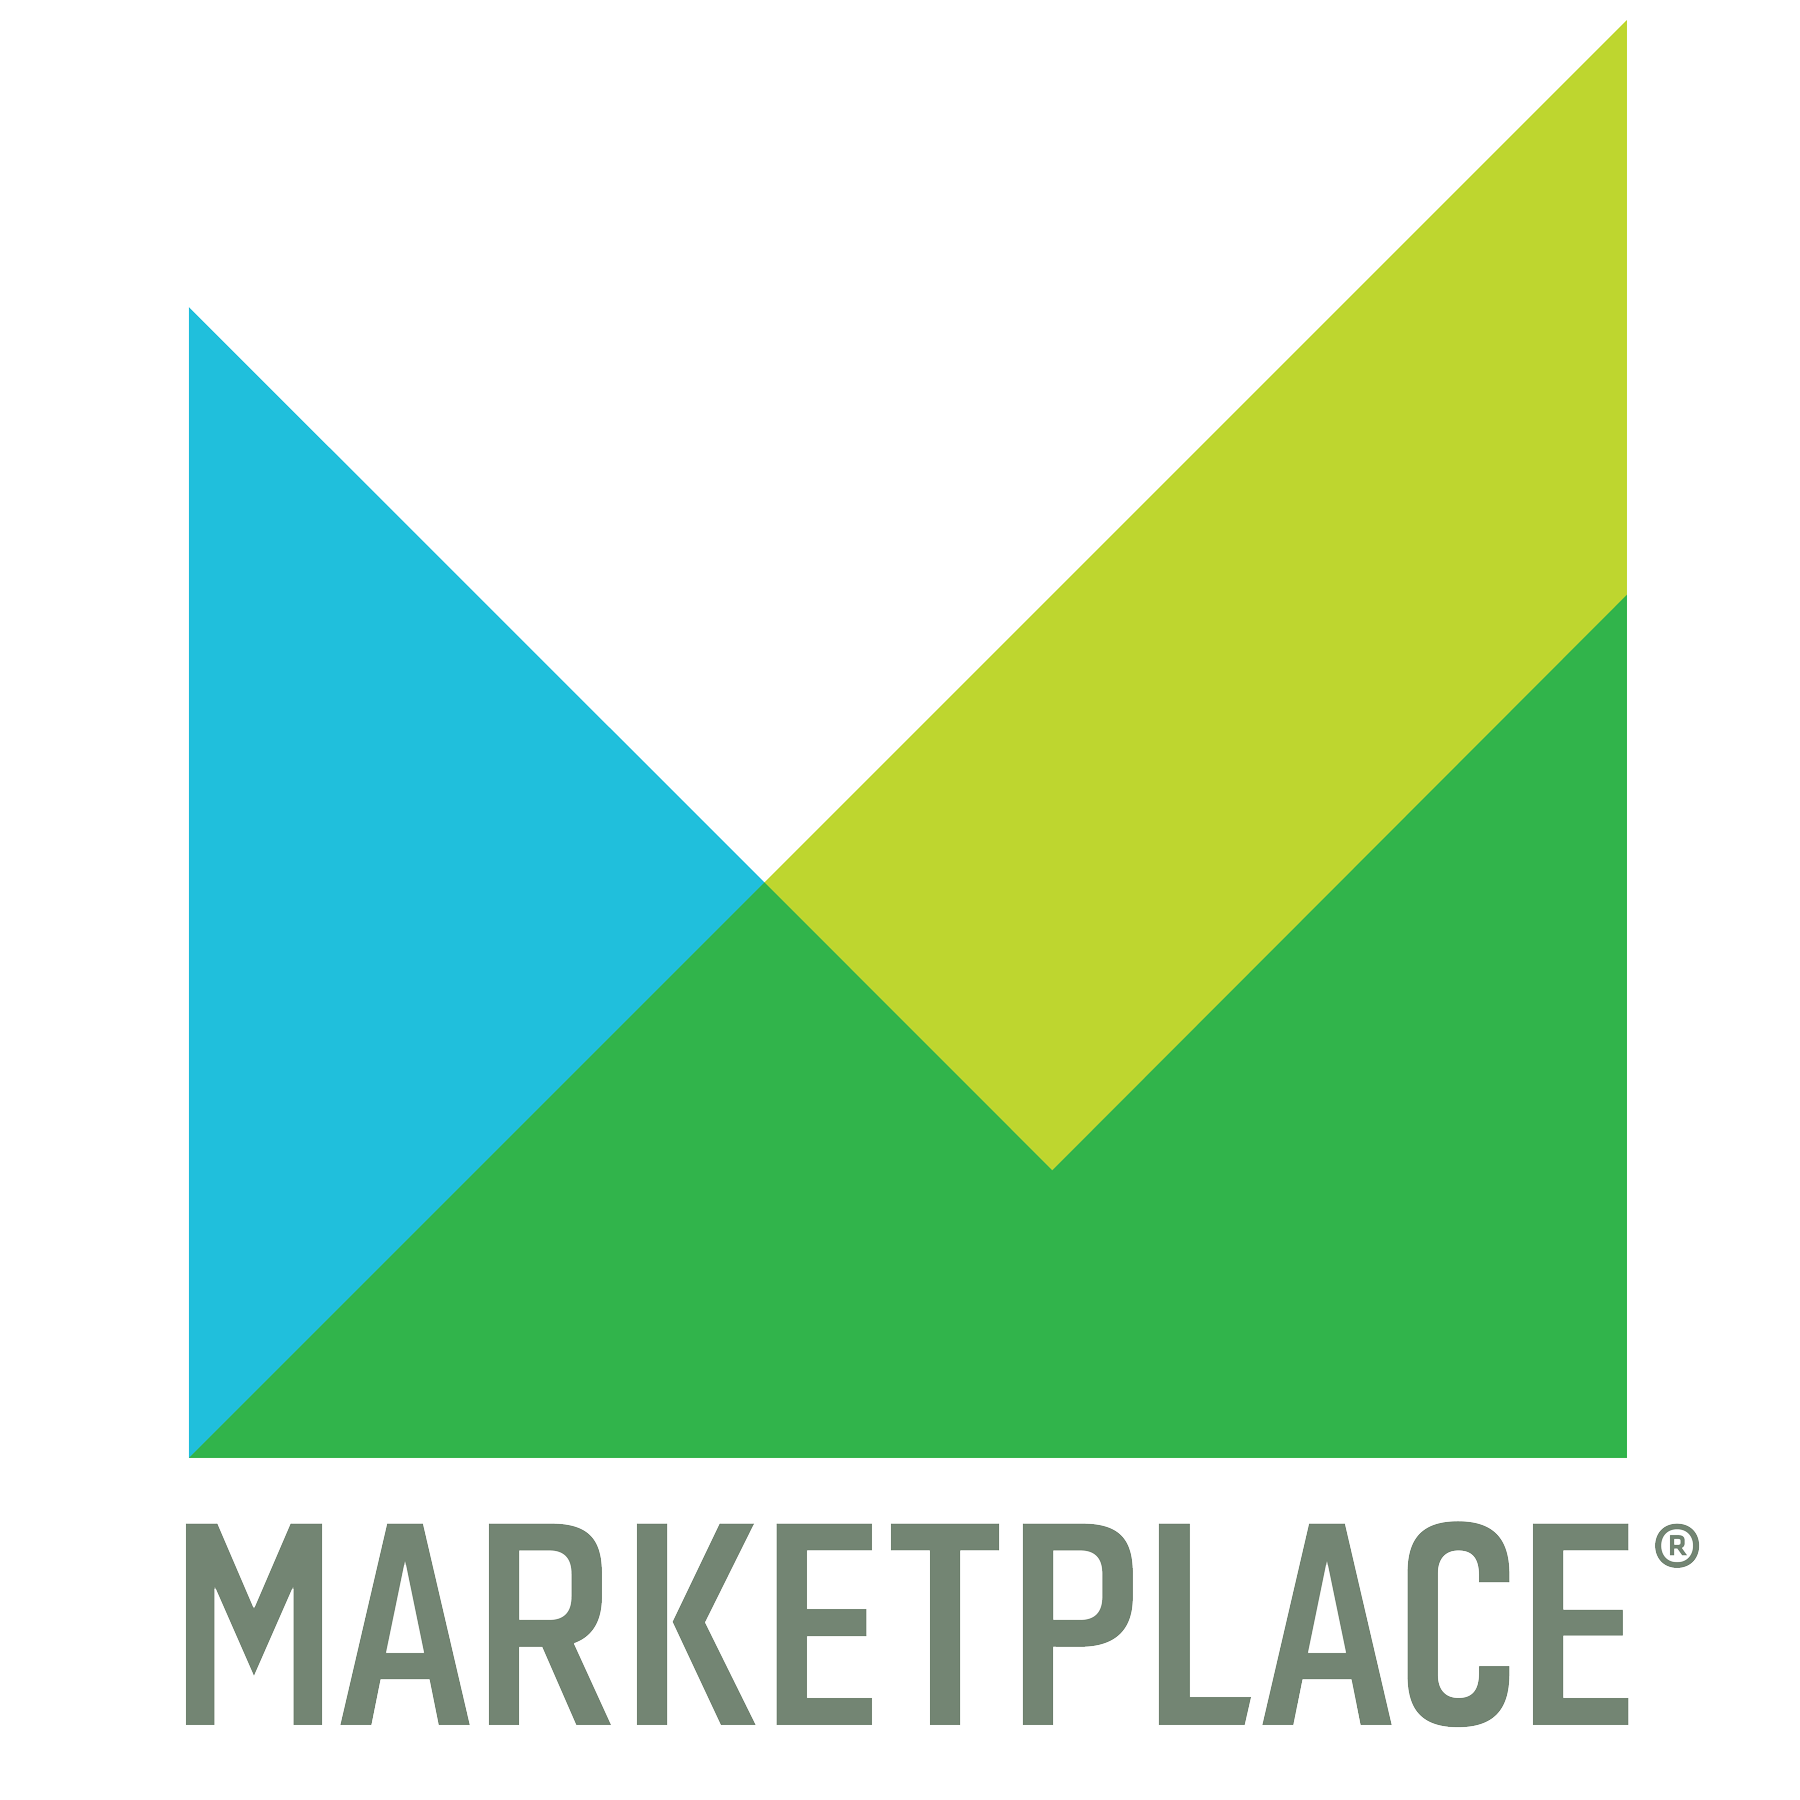 Marketplace - Business news and economic stories for everyone